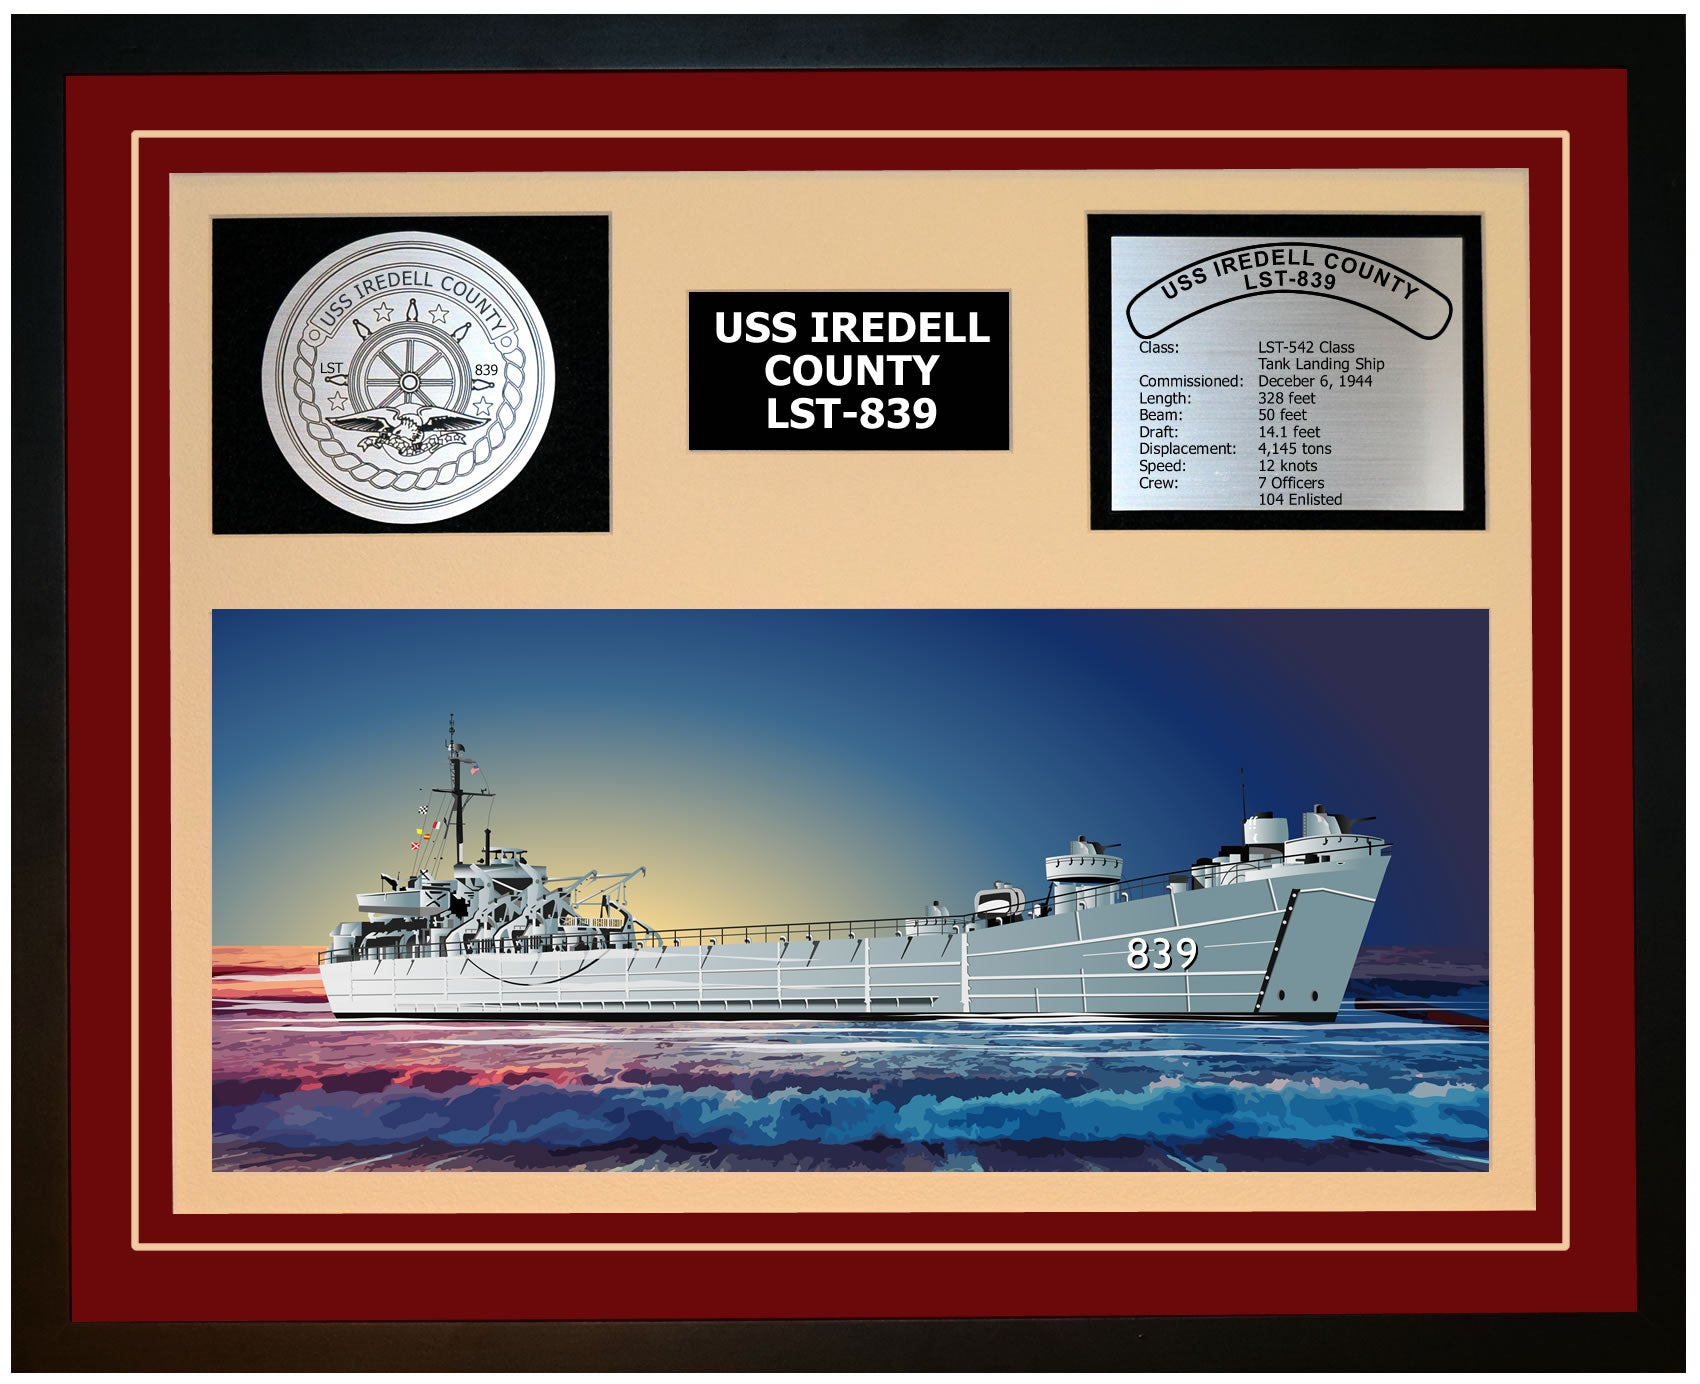 USS IREDELL COUNTY LST-839 Framed Navy Ship Display Burgundy